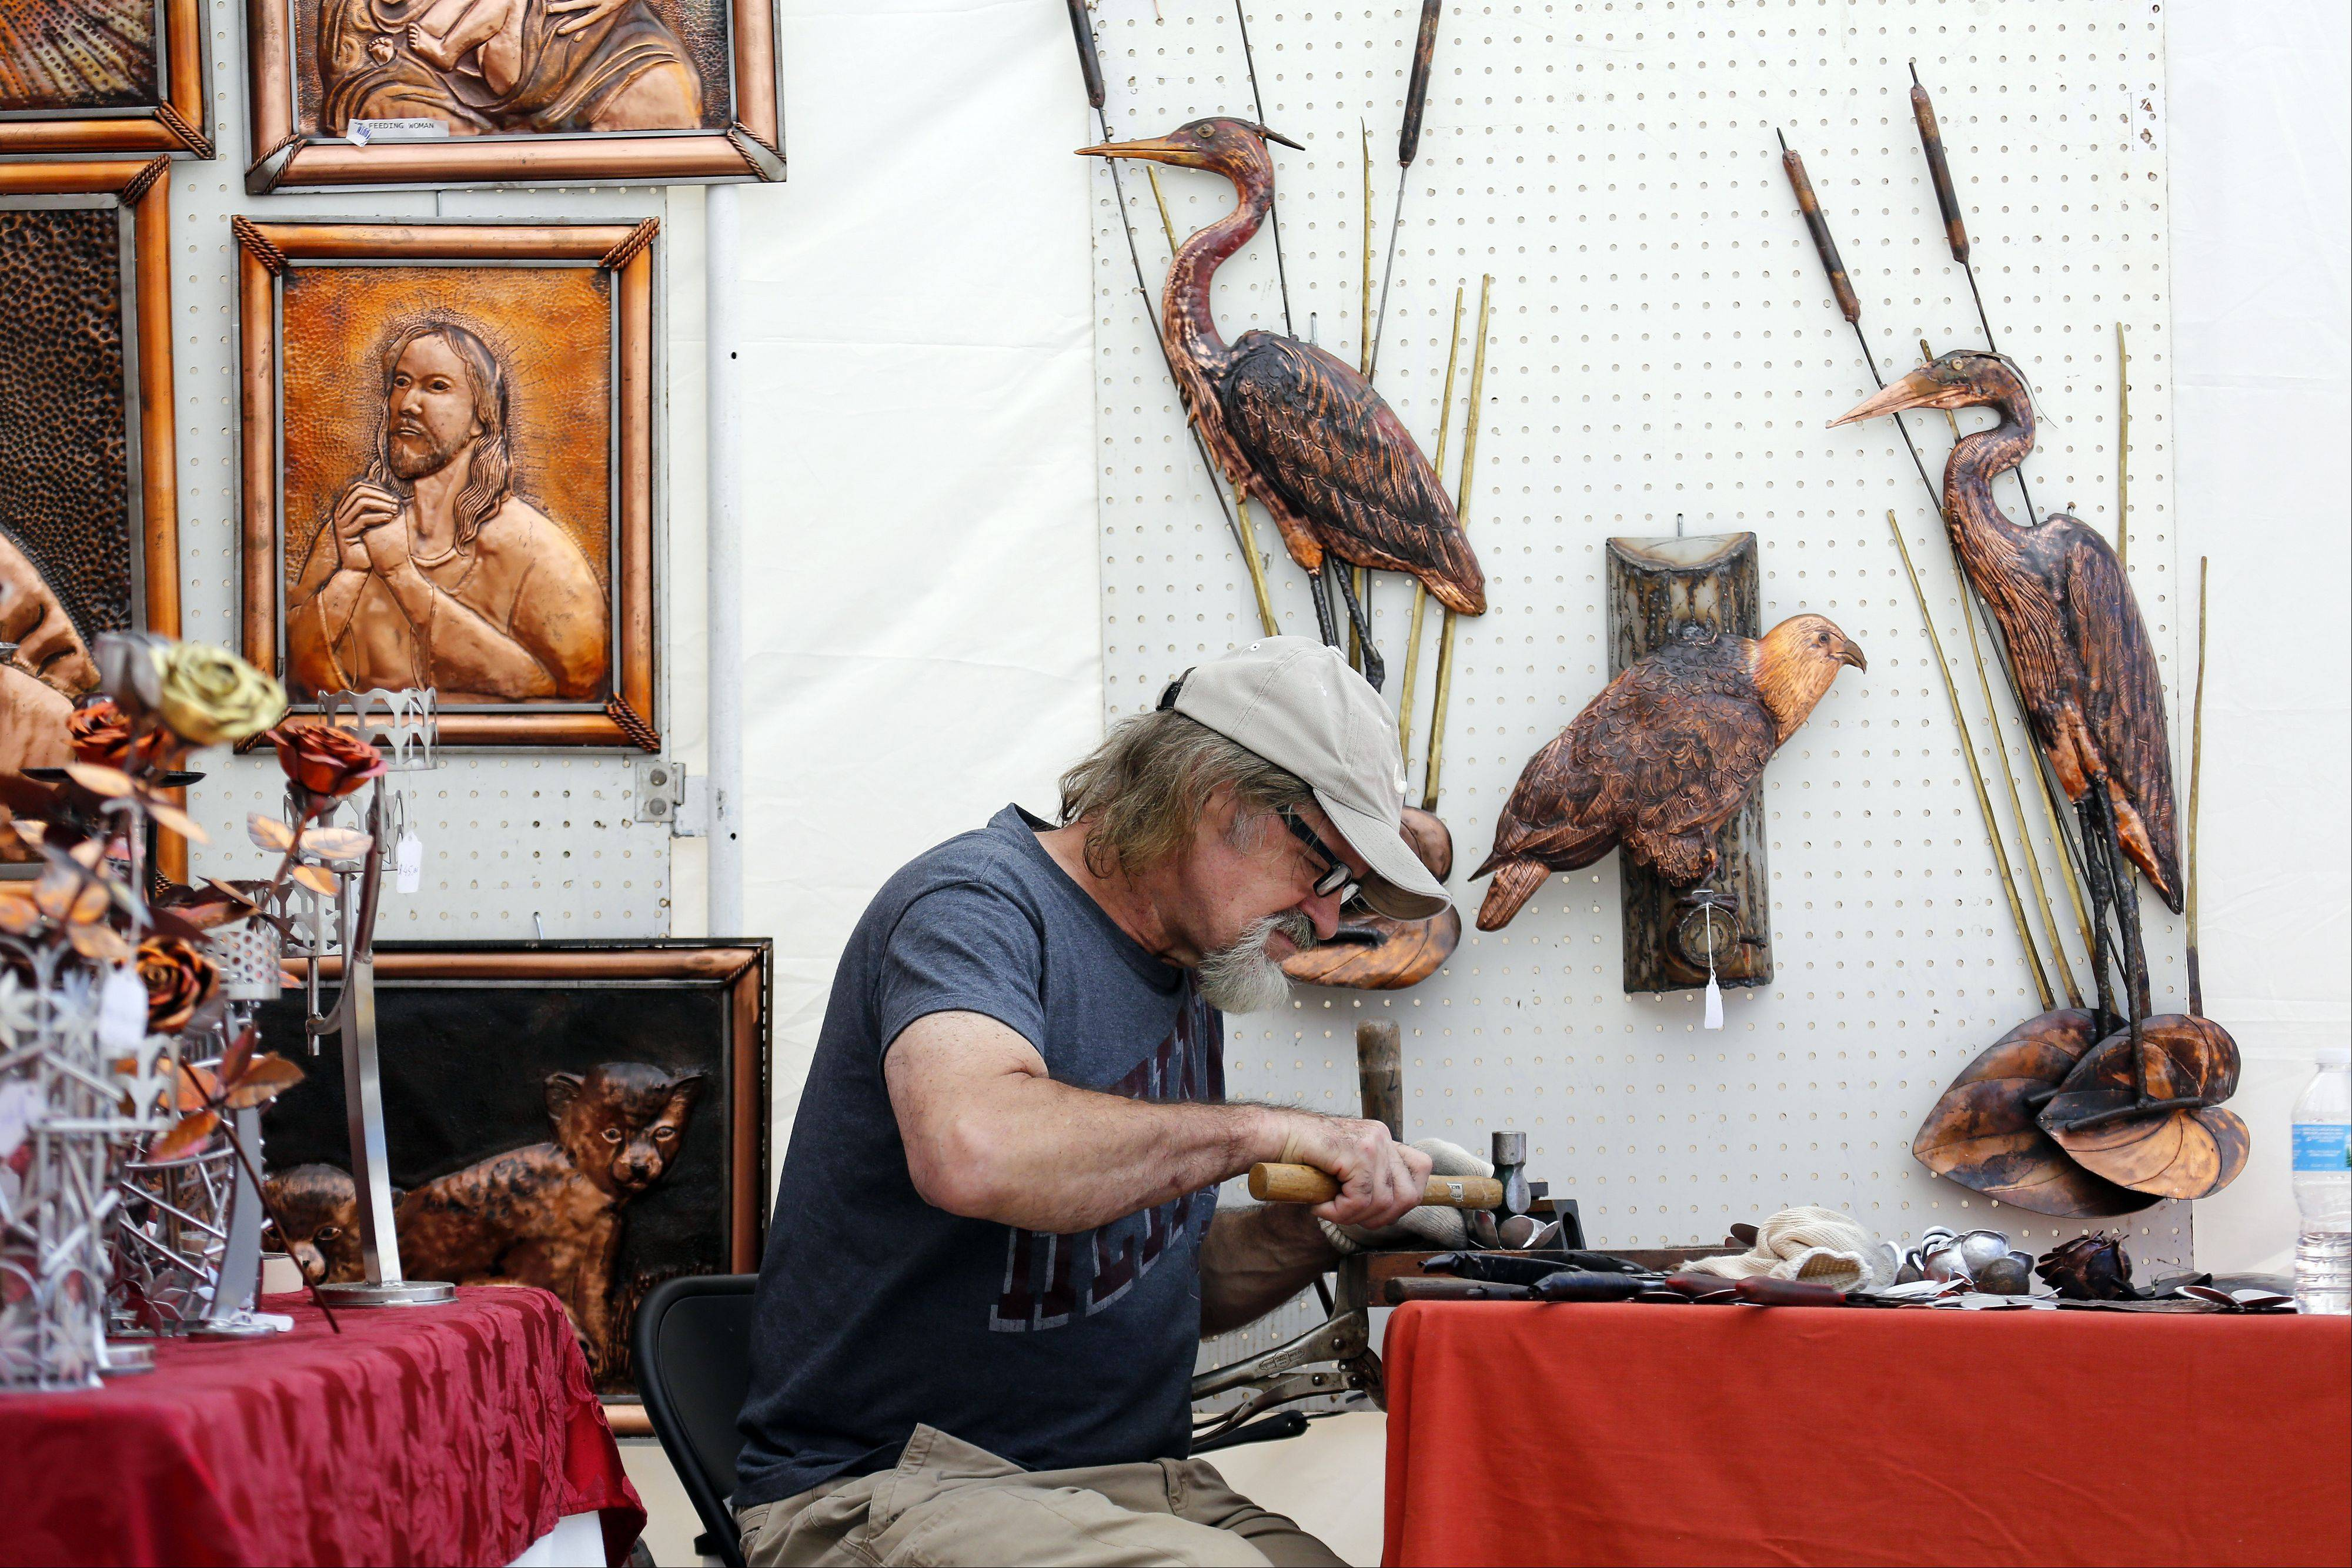 Surrounded by his artwork, Józef Andrzejczuk of Mount Prospect creates a rose from copper during Art & Soul on the Fox Saturday in Elgin. Andrzejczuk has been working in metal for more than 30 years and also does custom artwork.